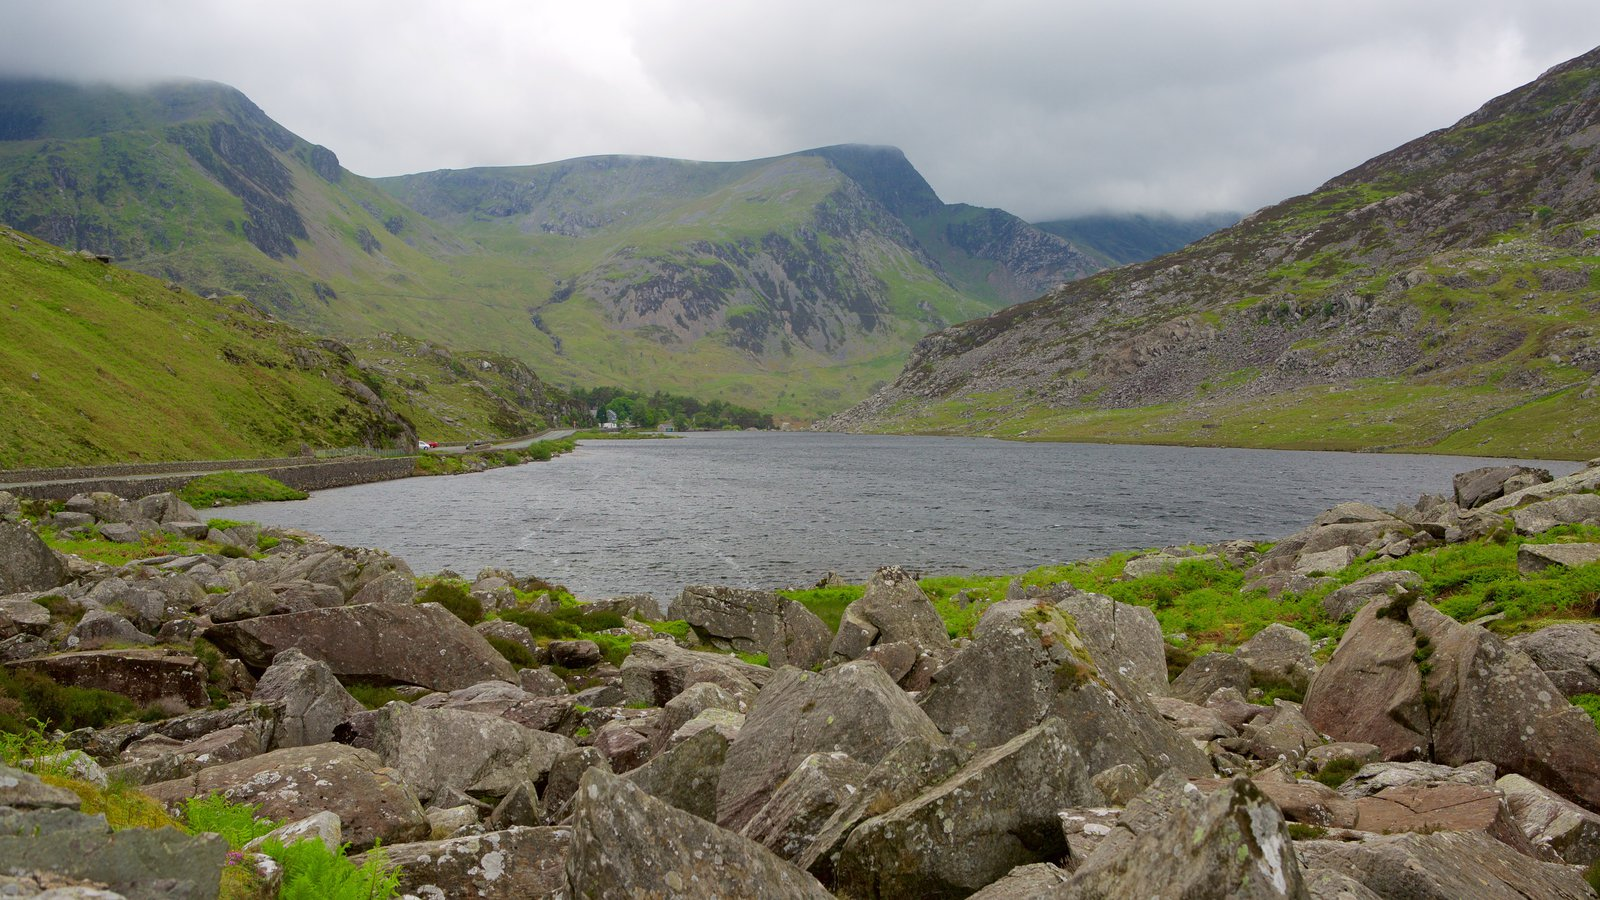 Snowdonia National Park showing a river or creek and mountains